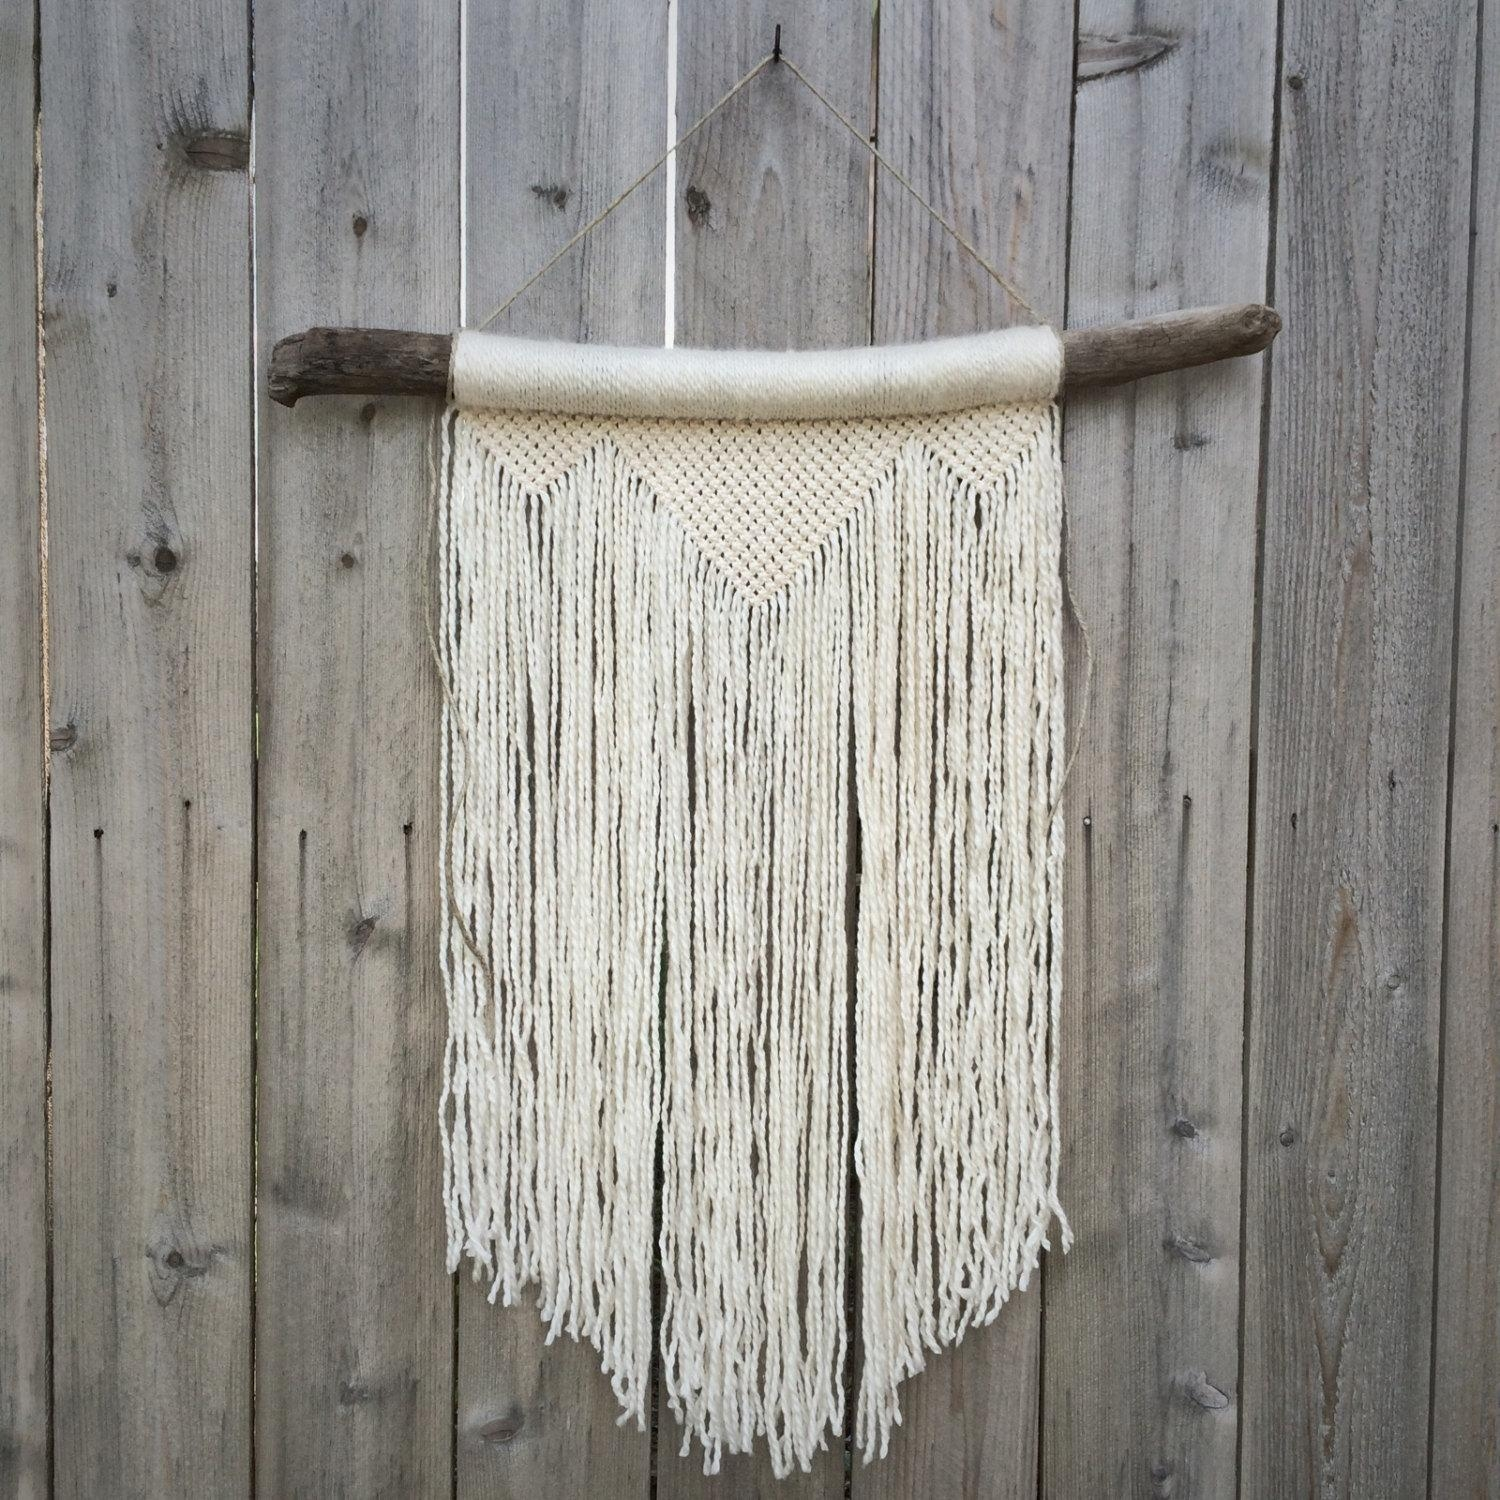 Large White Macrame Wall Hanging On Driftwood For Art Image 16